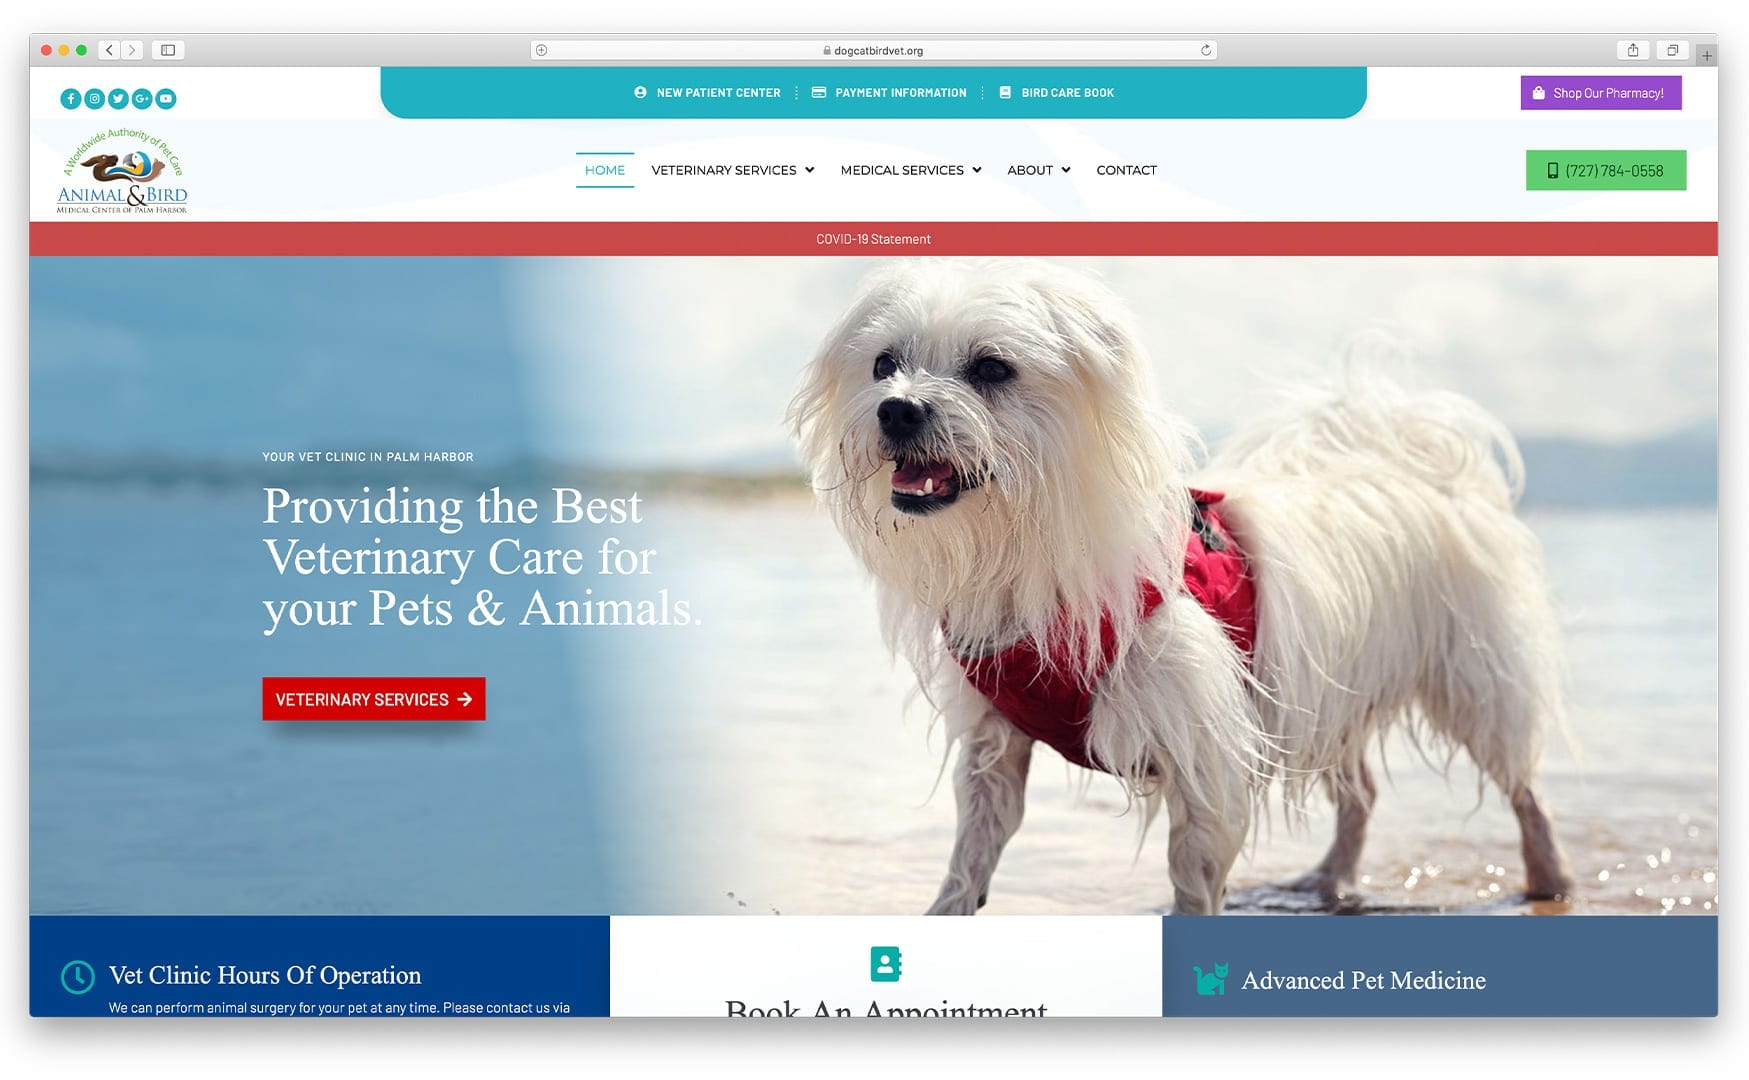 Animal & Bird Medical Center of Palm Harbor Website Design by sliStudios | Miami